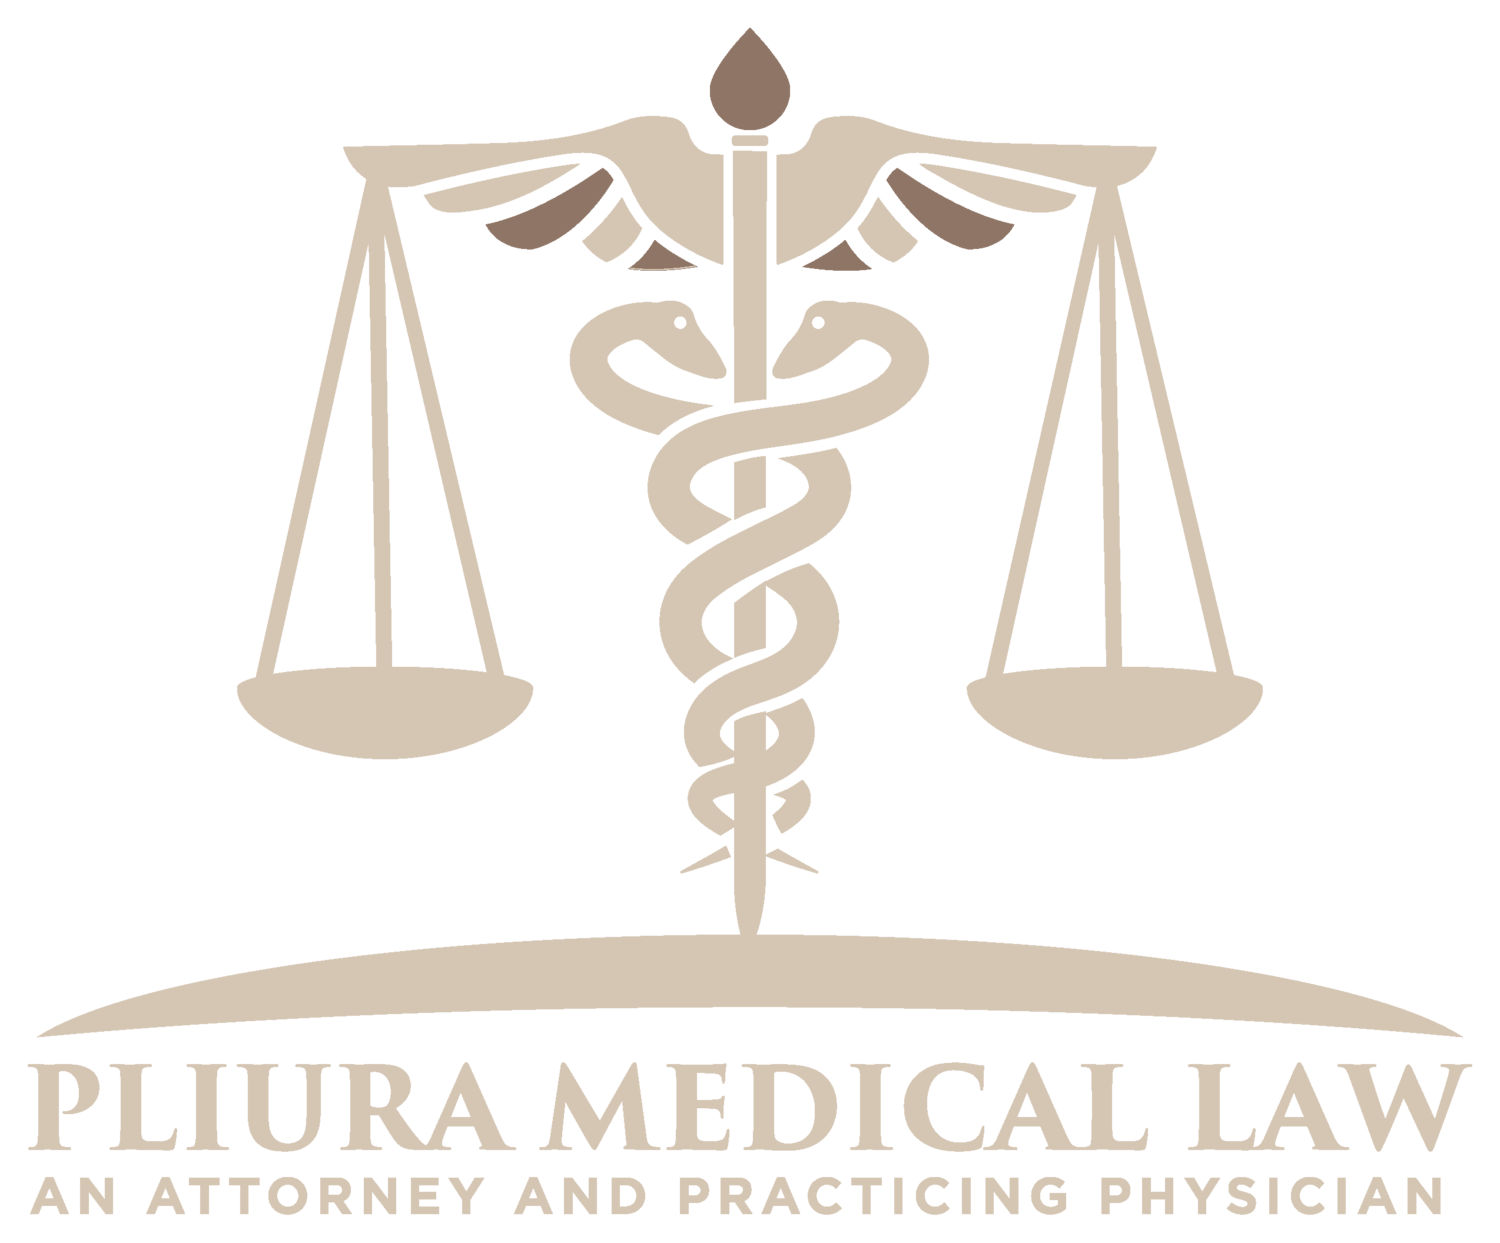 Pliura Medical Law